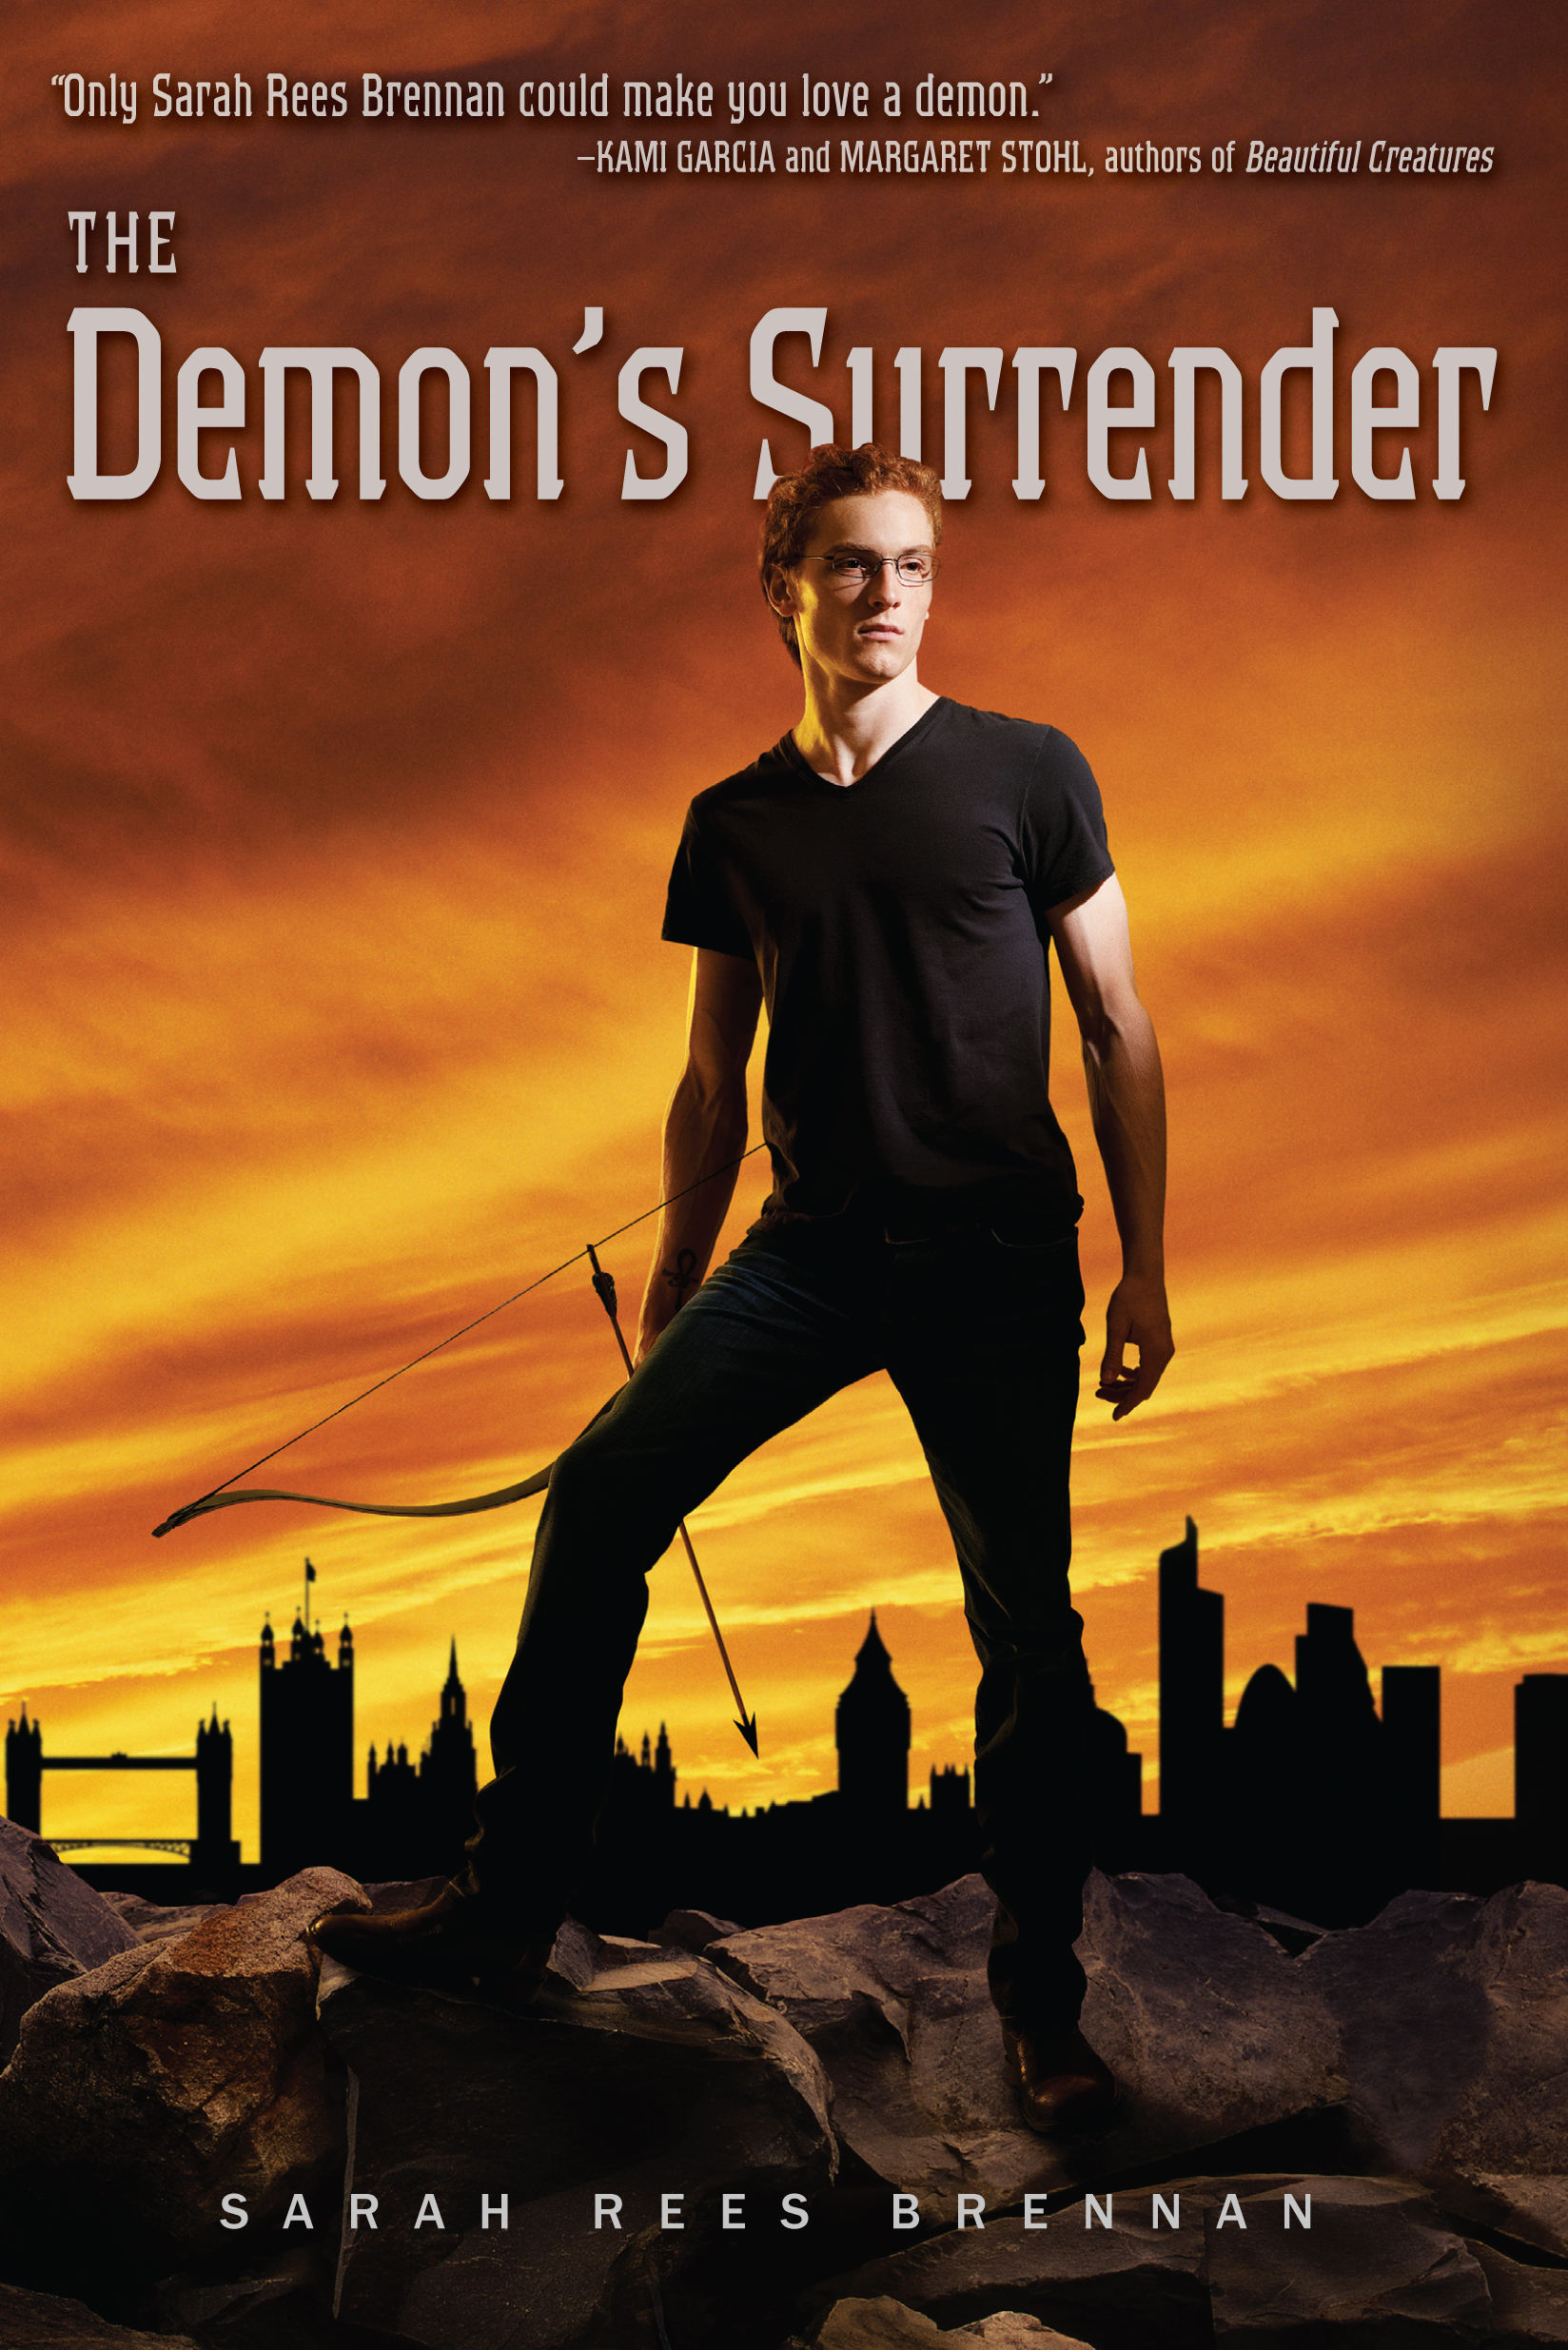 THE DEMONS LEXICON EBOOK DOWNLOAD